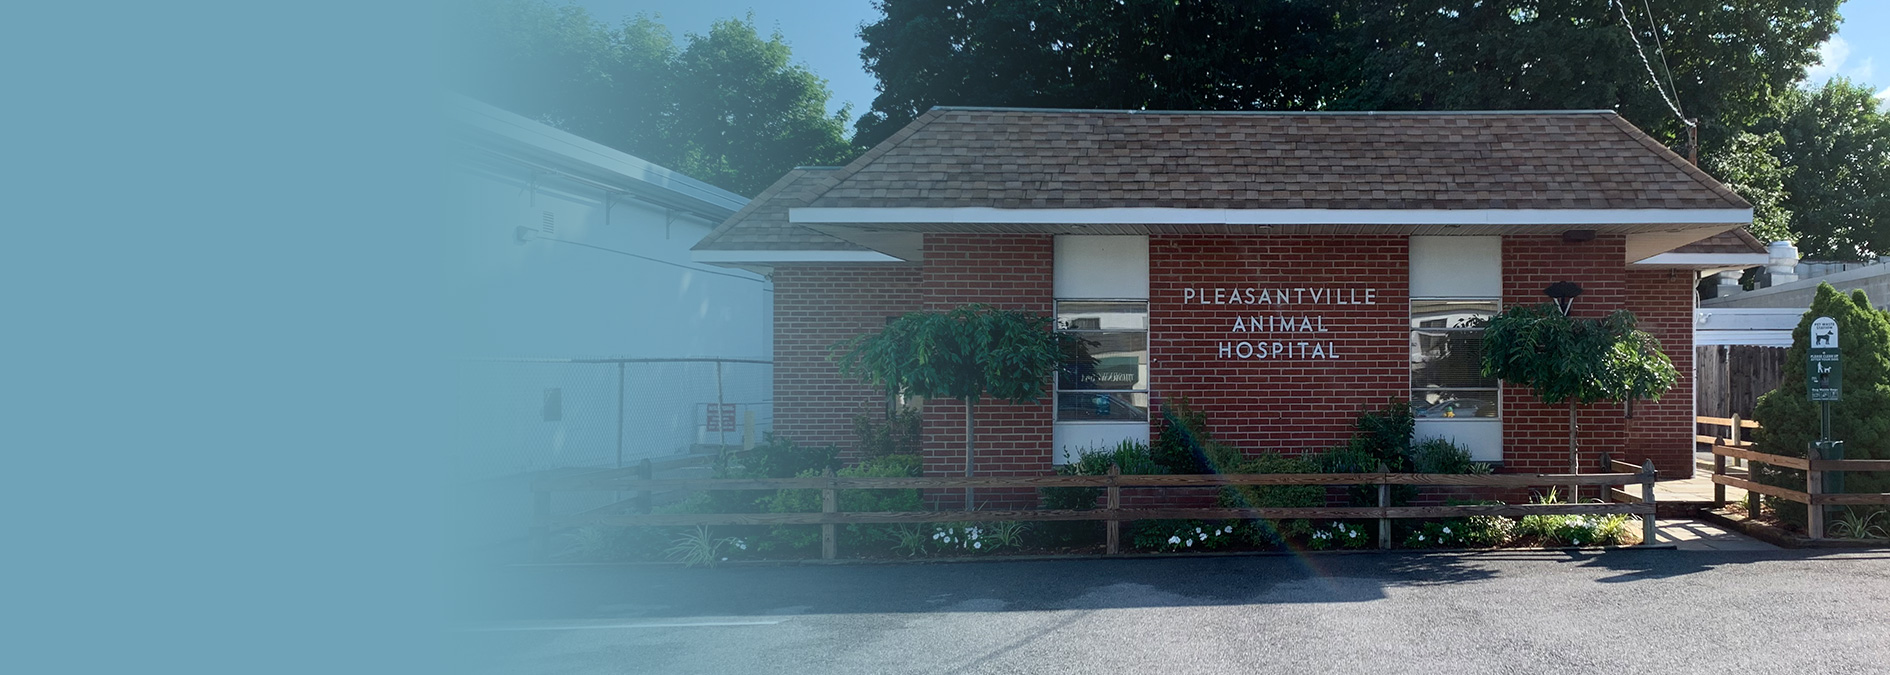 Serving Pleasantville and the Surrounding Area for Over 30 Years